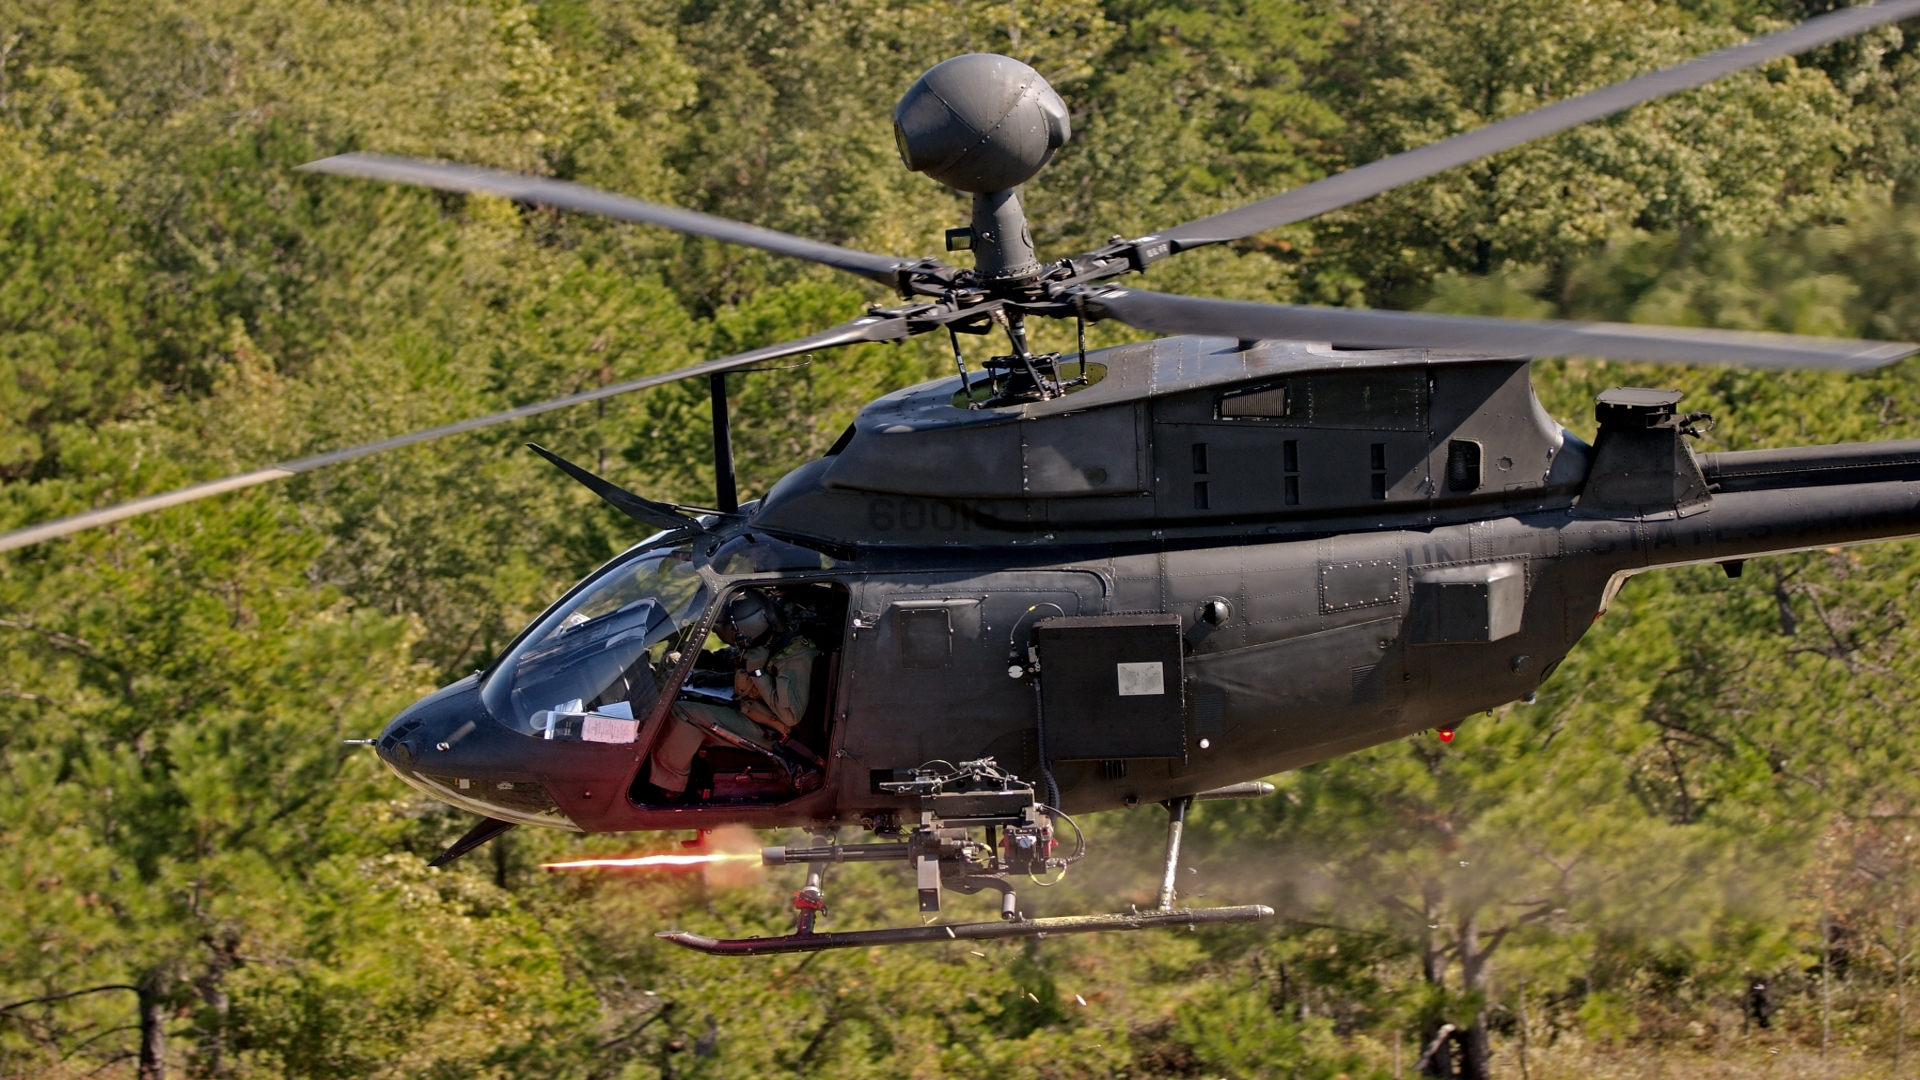 Army Helicopters fire vehicles HD Wallpaper